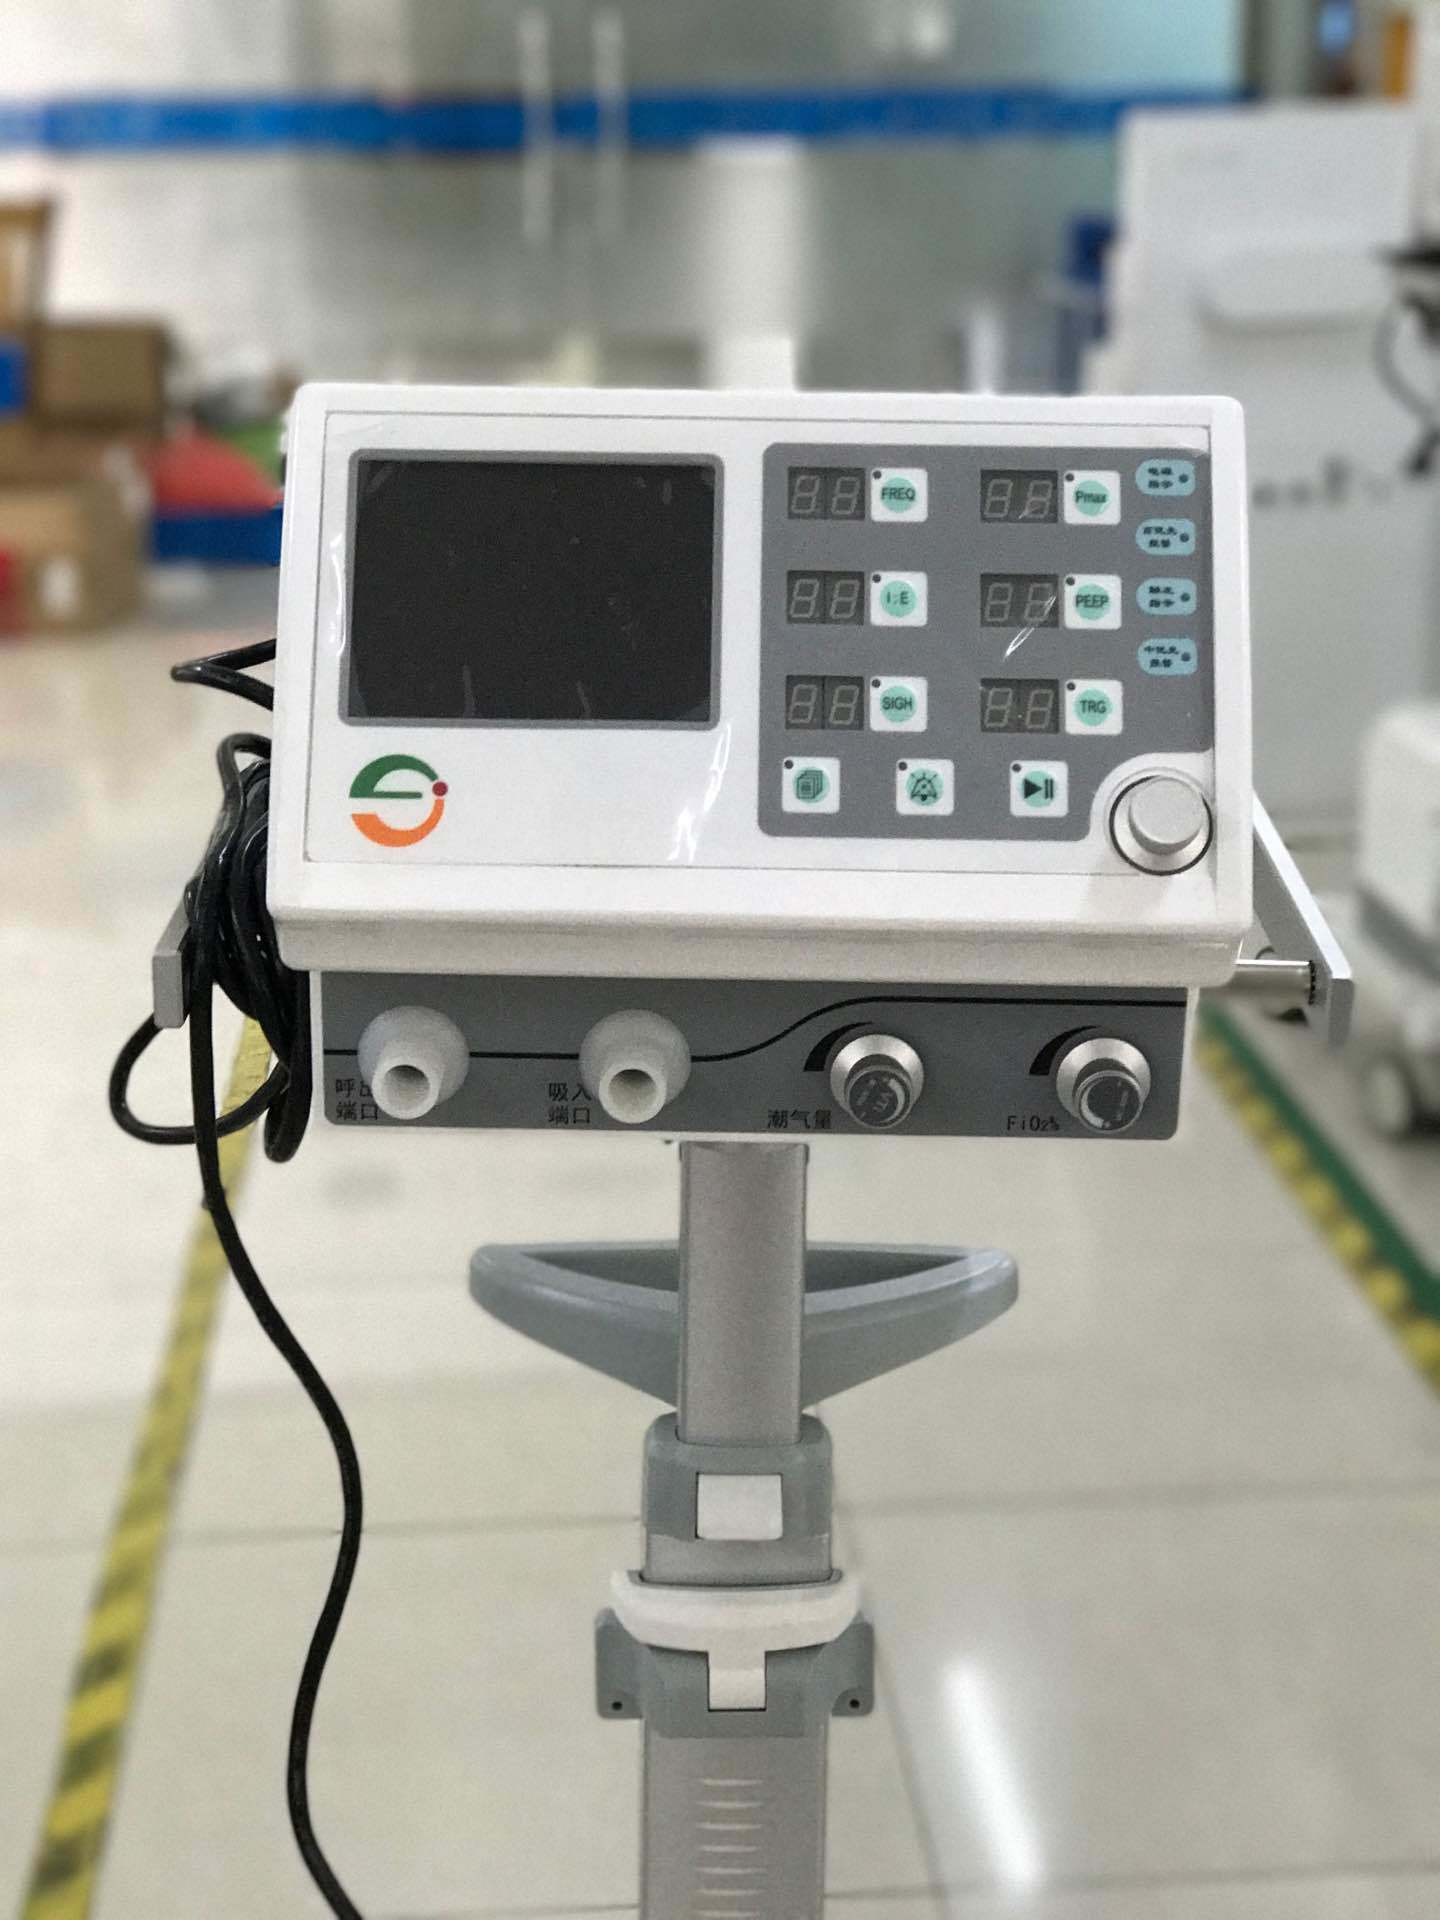 High Quality Medical/Hospital Ventilator Lh8500 for Operation and Rehabilitation